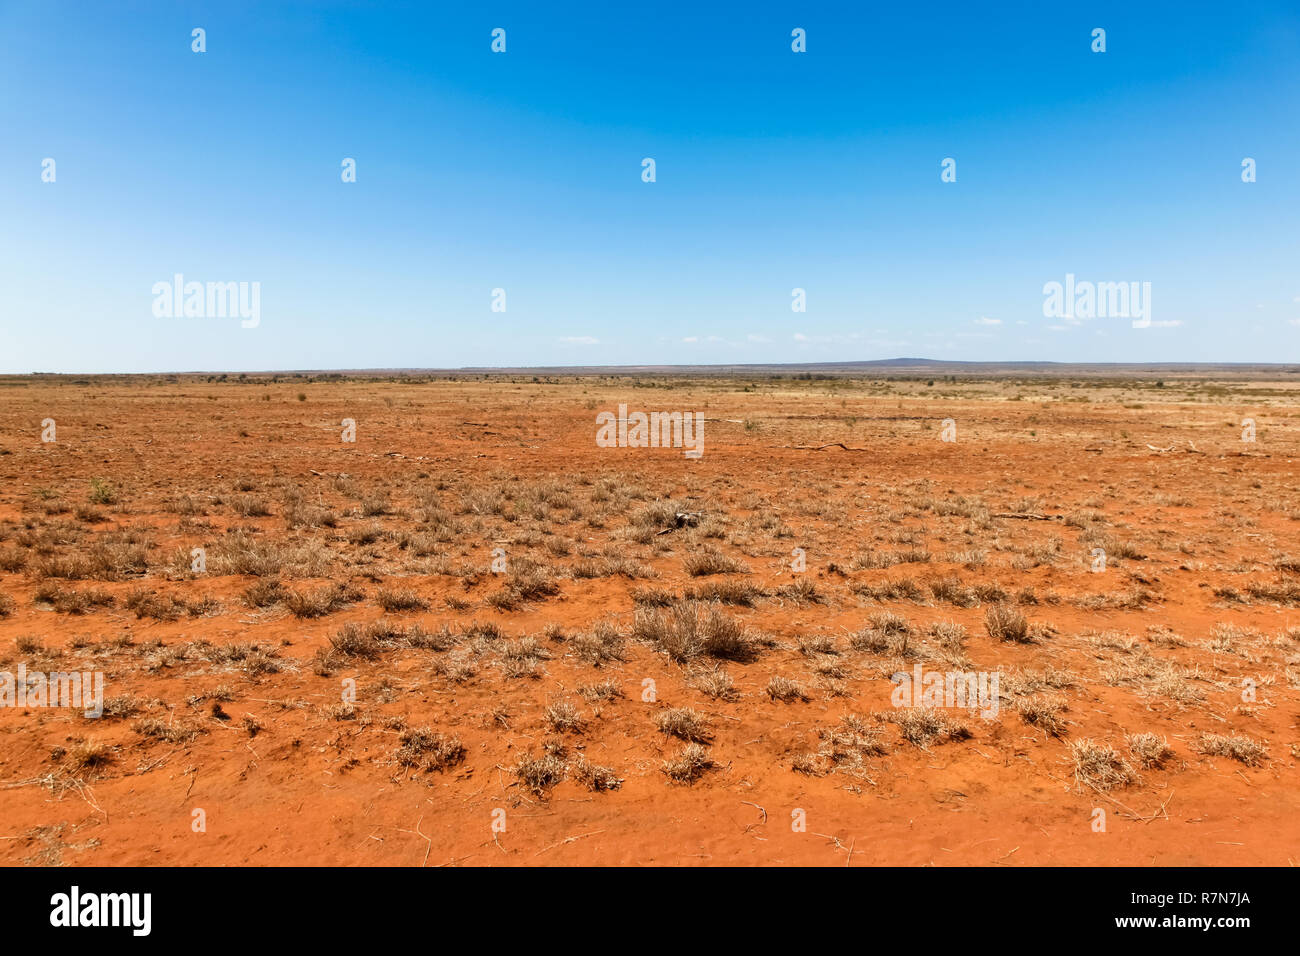 Flat orange drought effected land in central Queensland south of Charters Towers. Central Queensland is a remote place and subject to many droughts. - Stock Image